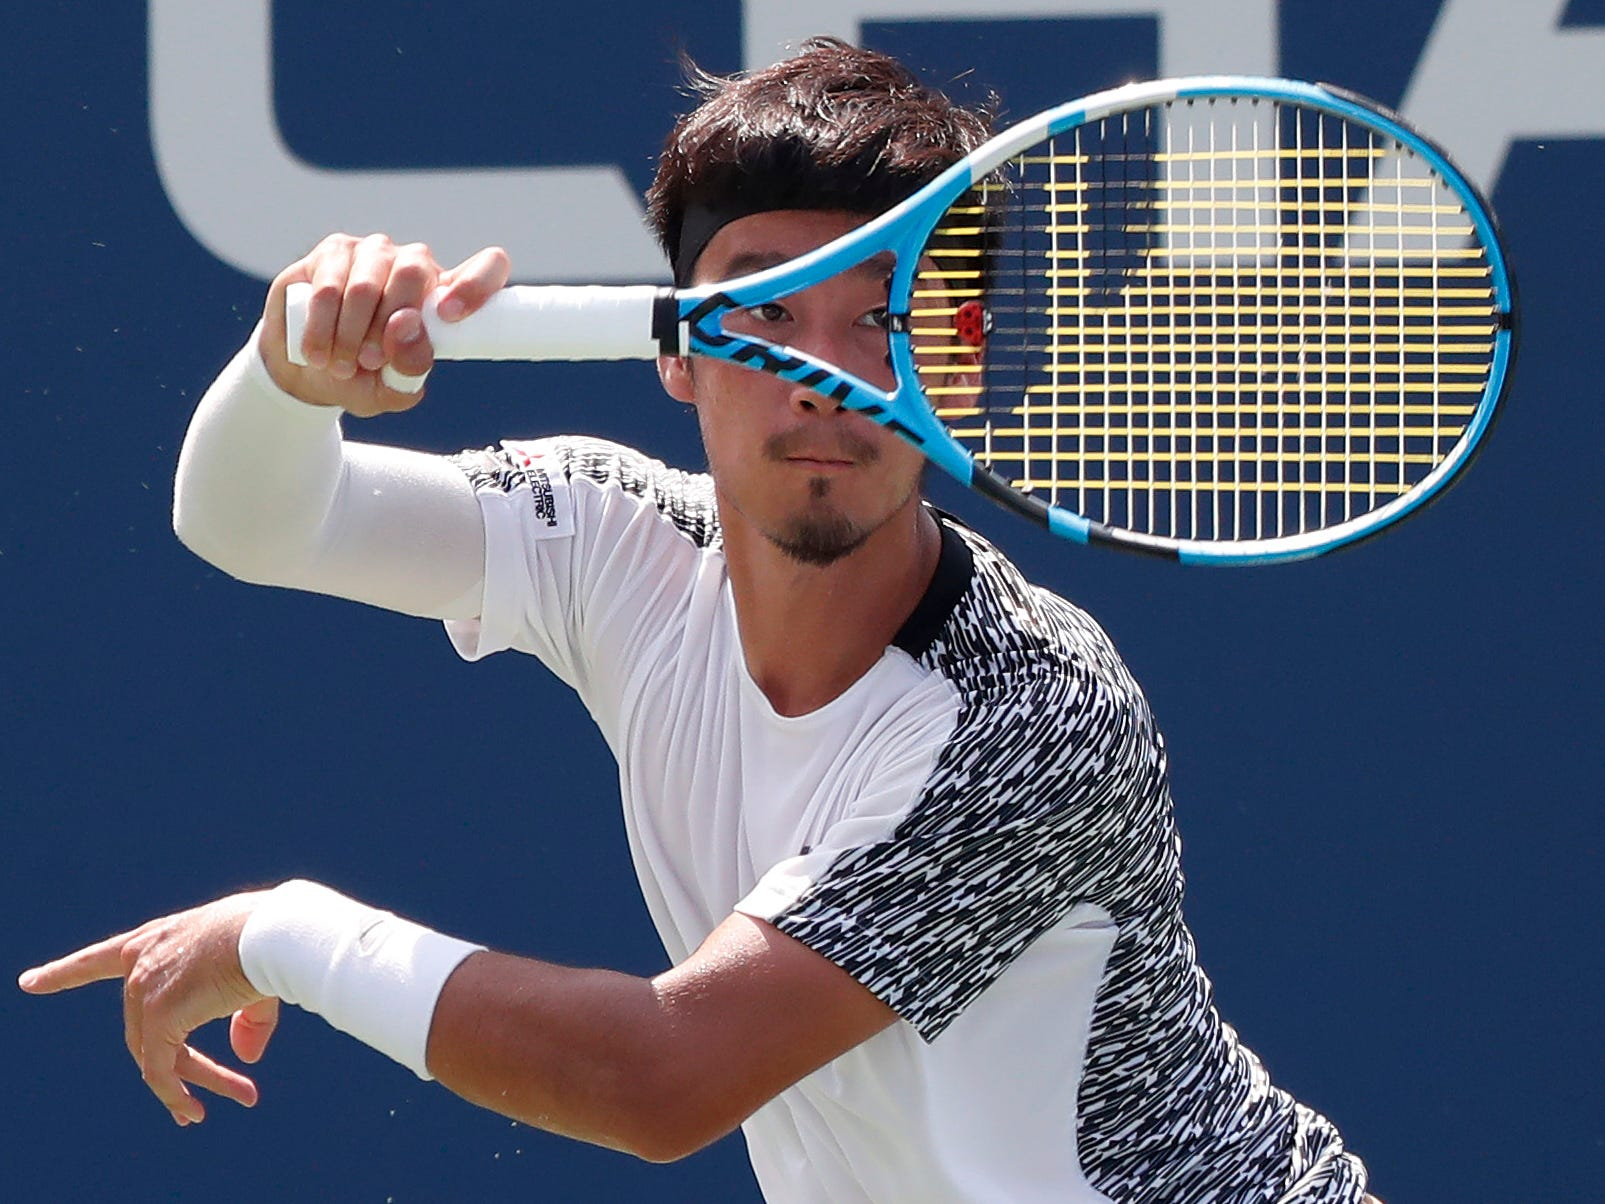 Yuichi Sugita of Japan hits a forehand against Richard Gasquet of France.